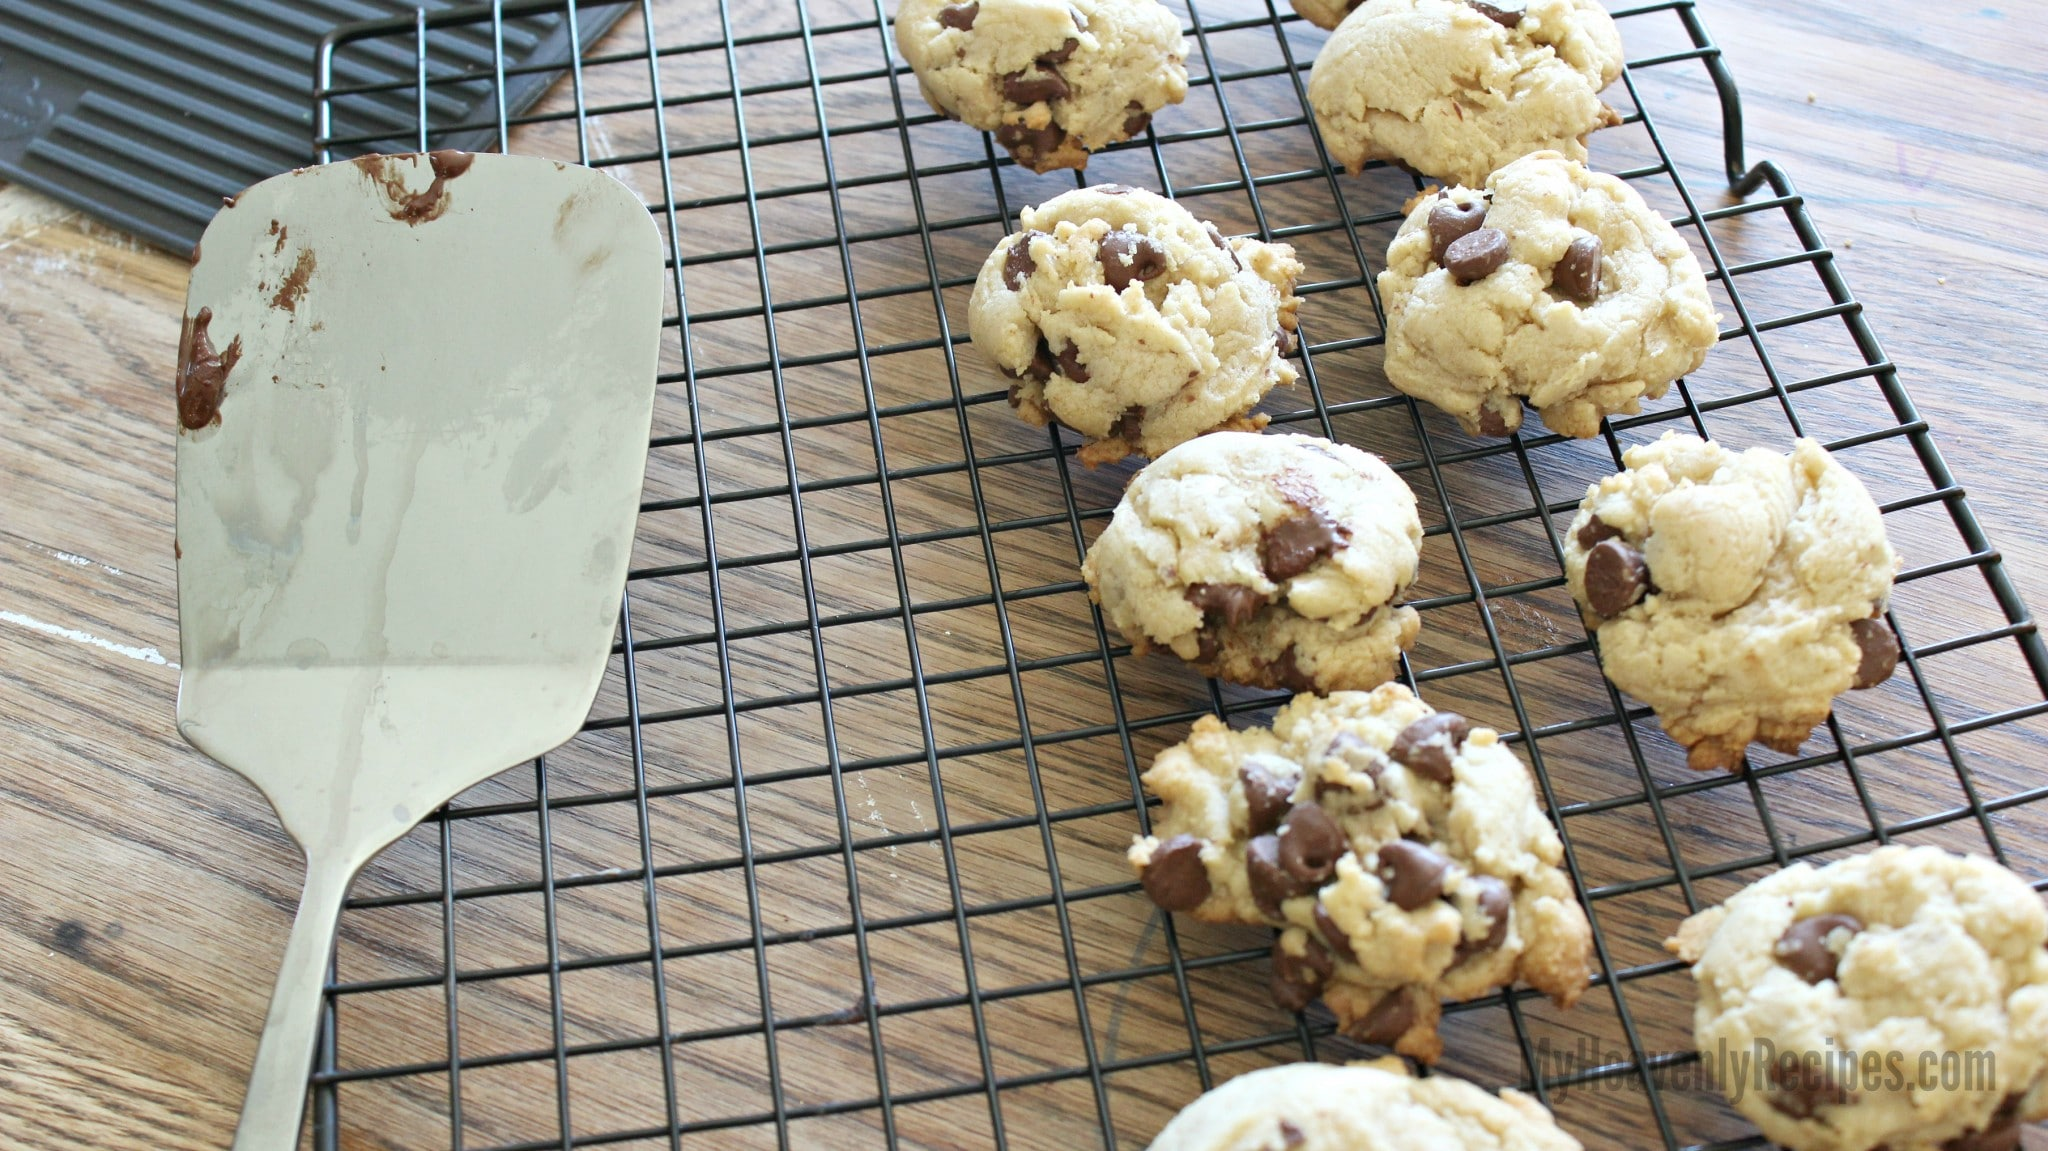 Marci's Chilled Chocolate Chip Cookies Recipe + Video - My ...